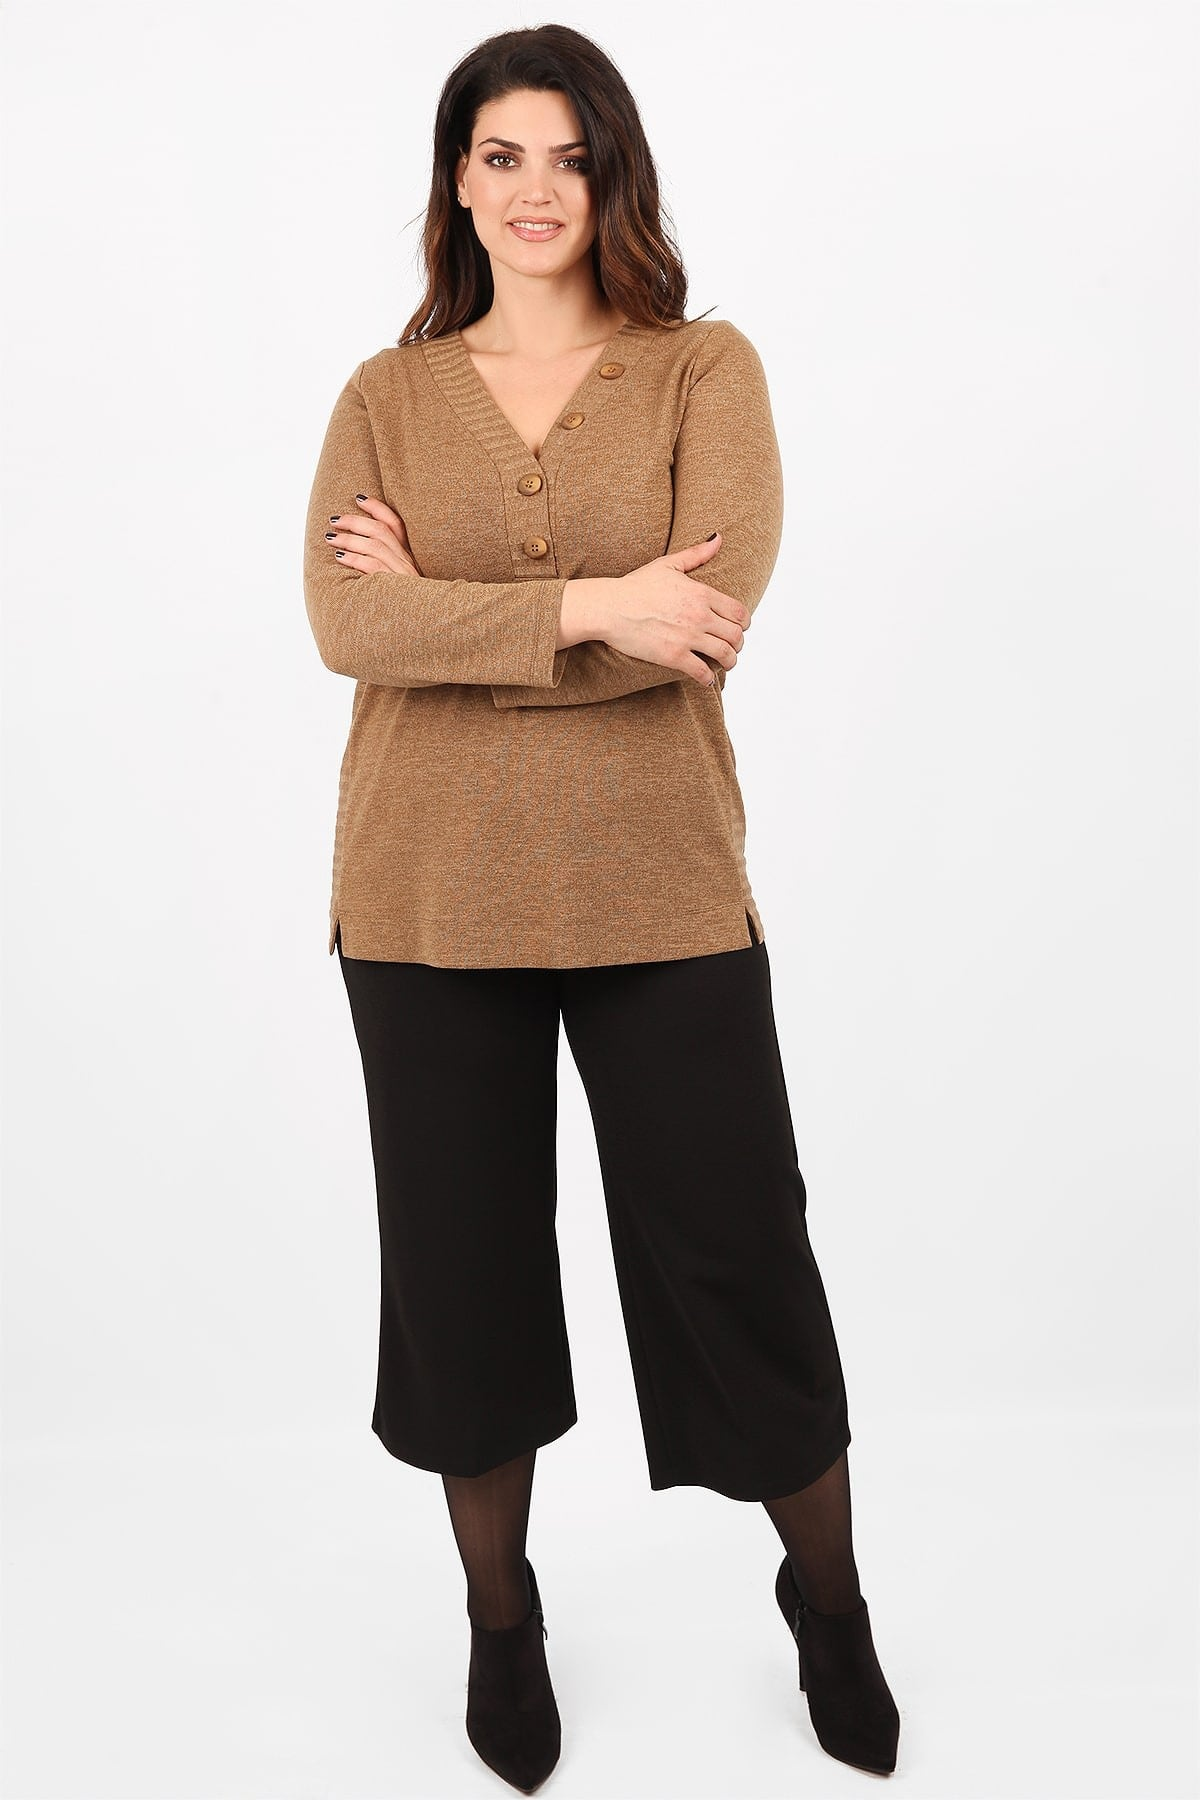 Knit blouse with rib detail and buttons on the V